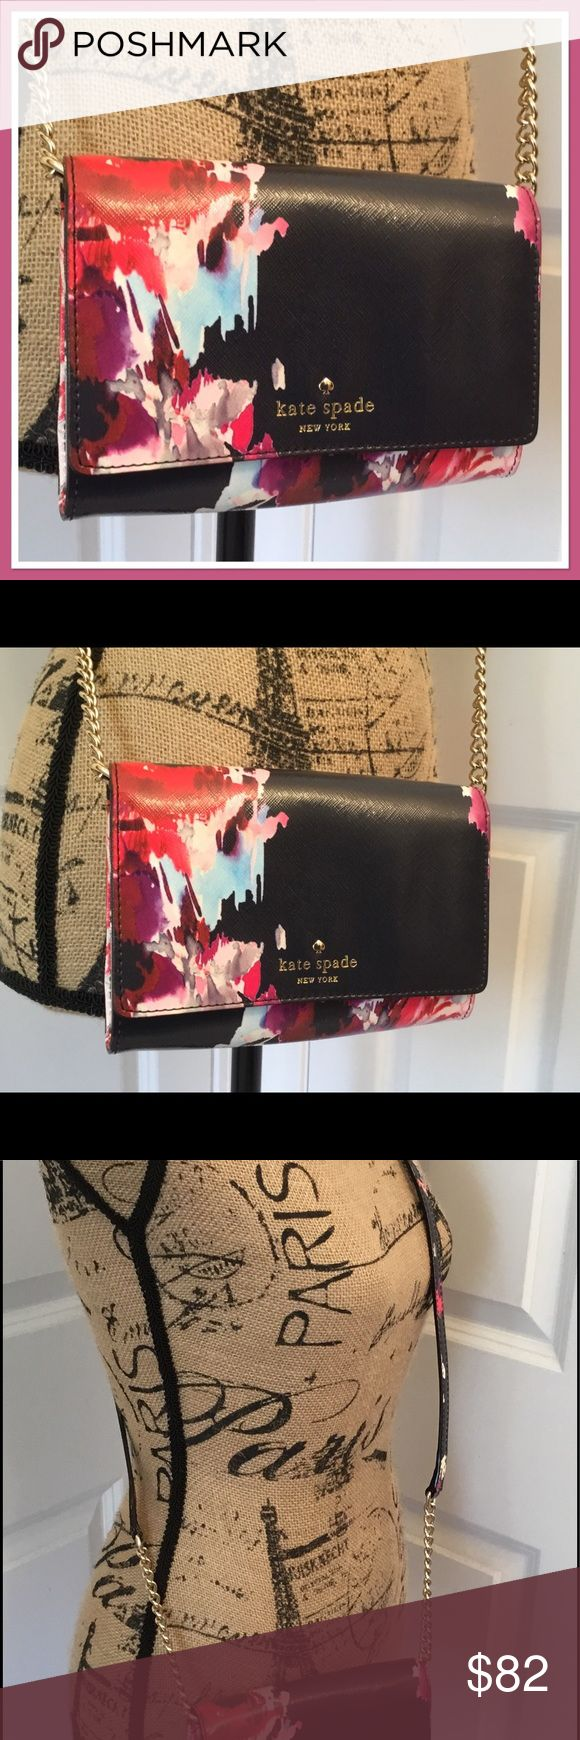 """Kate Spade Cedar Street Floral Cami Handbag NWT This is a brand new with tags Kate Spade Cedar Street Floral Cami Handbag.  Never used, but tags came tucked inside, not attached.  Measures about 5.7""""h x 6.5""""w x 0.8""""d, with a strap drop length of about 22.5"""".  (Small bag). It is made of printed glazed crosshatched fabric with matching trim and the quick & curious lining.  14-k light gold plated hardware.  Style # pwru4740. kate spade Bags Crossbody Bags"""